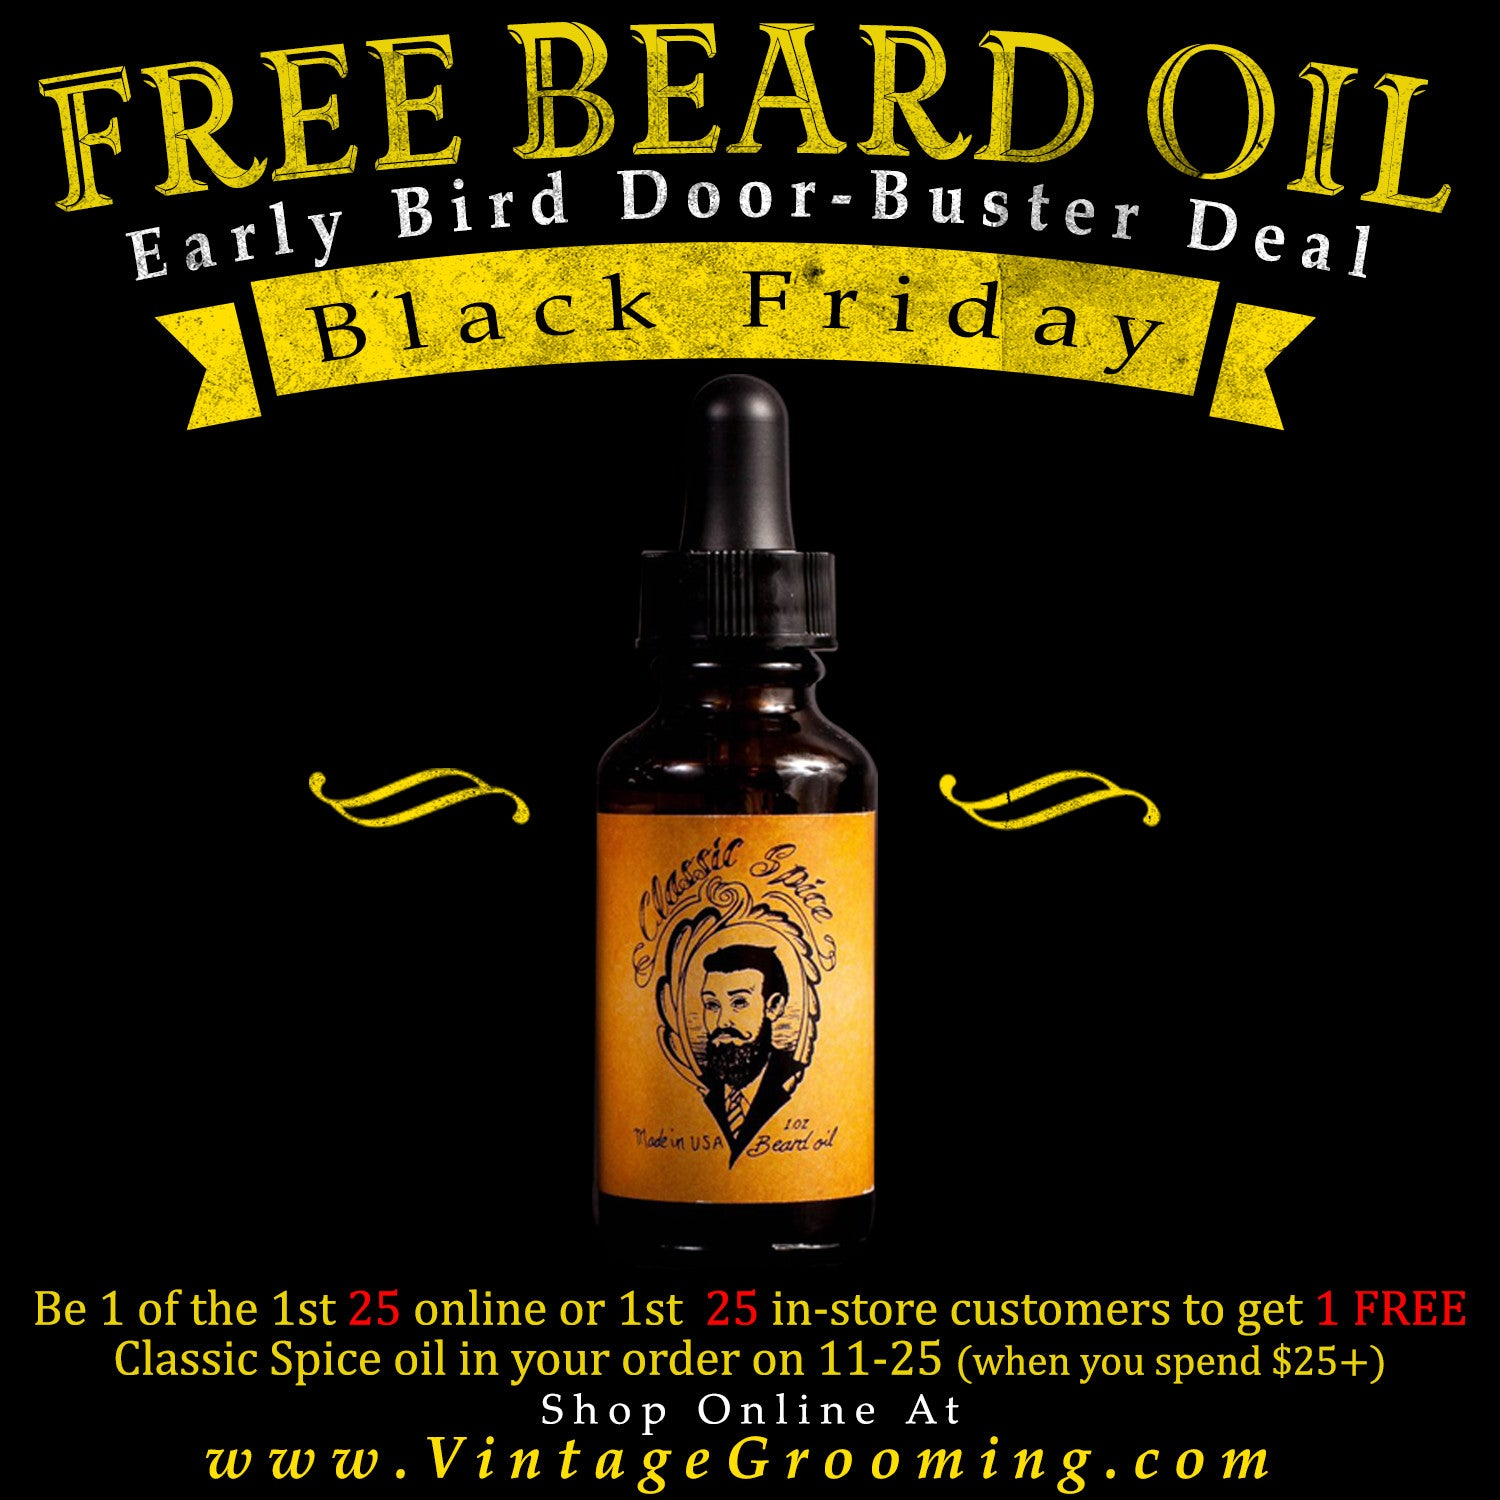 FREE Beard Oil Giveaway!